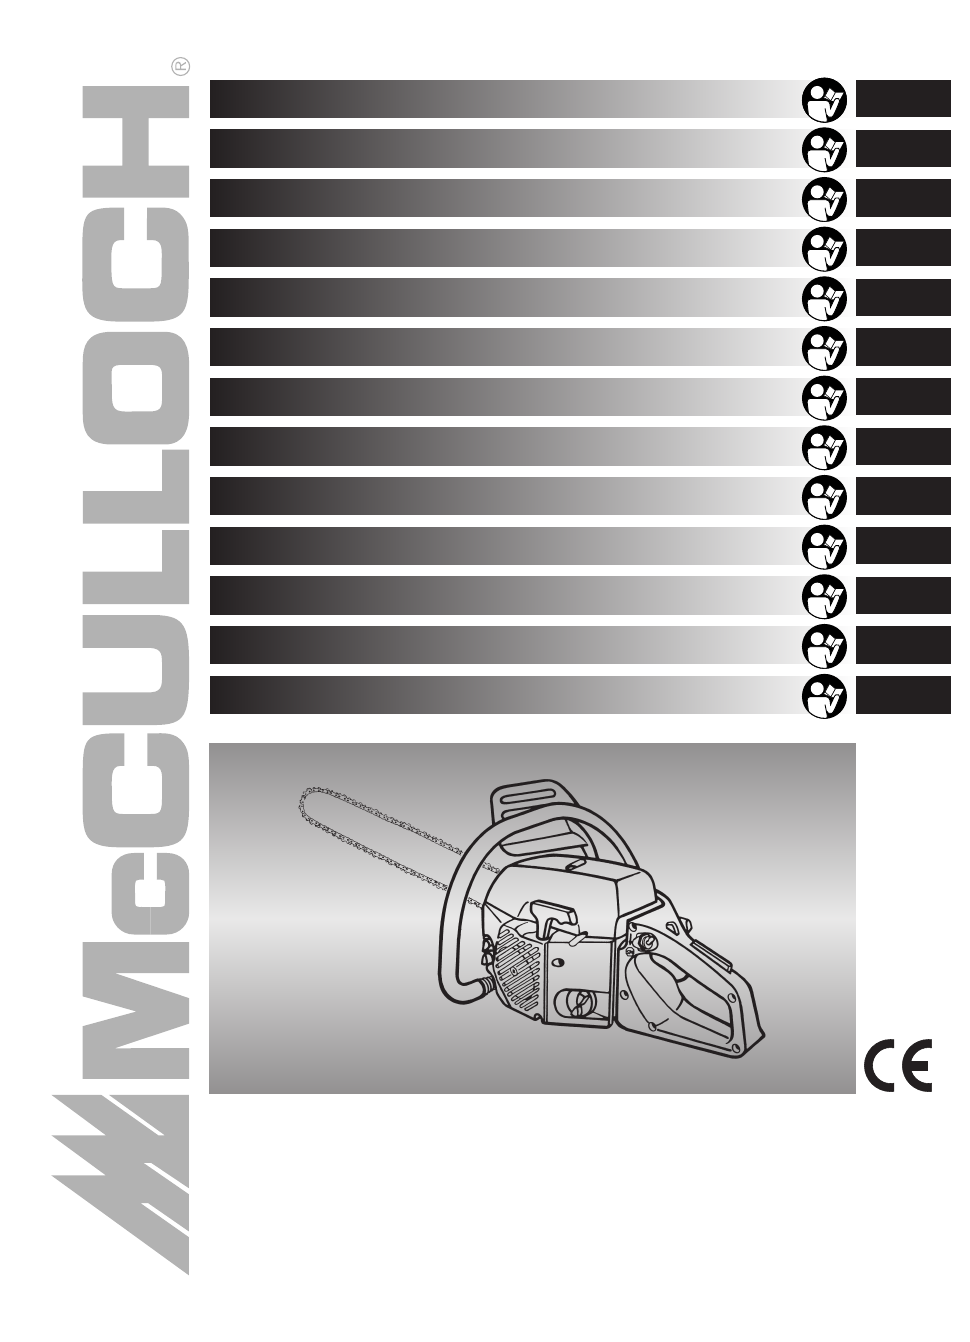 mccullough 538 user manual